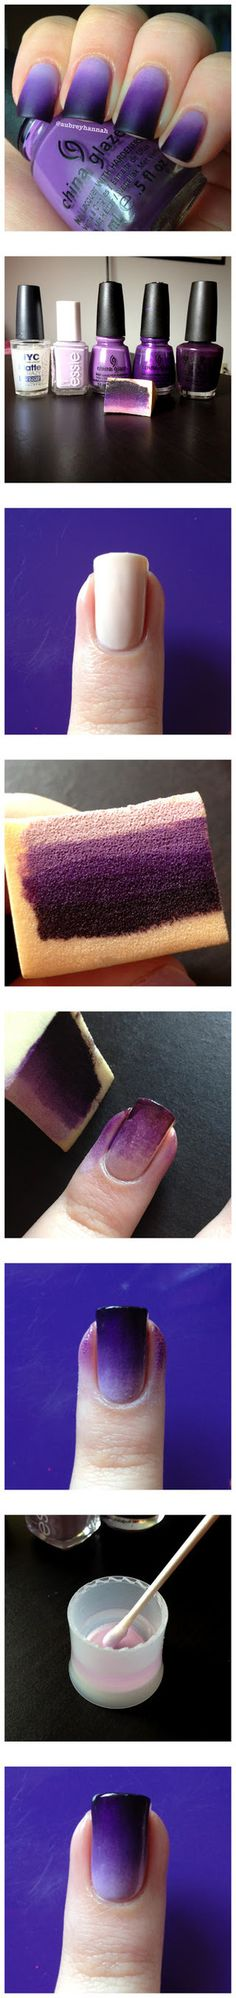 HC ombré. I think I will try this one. It looks simple enough.  No taping required